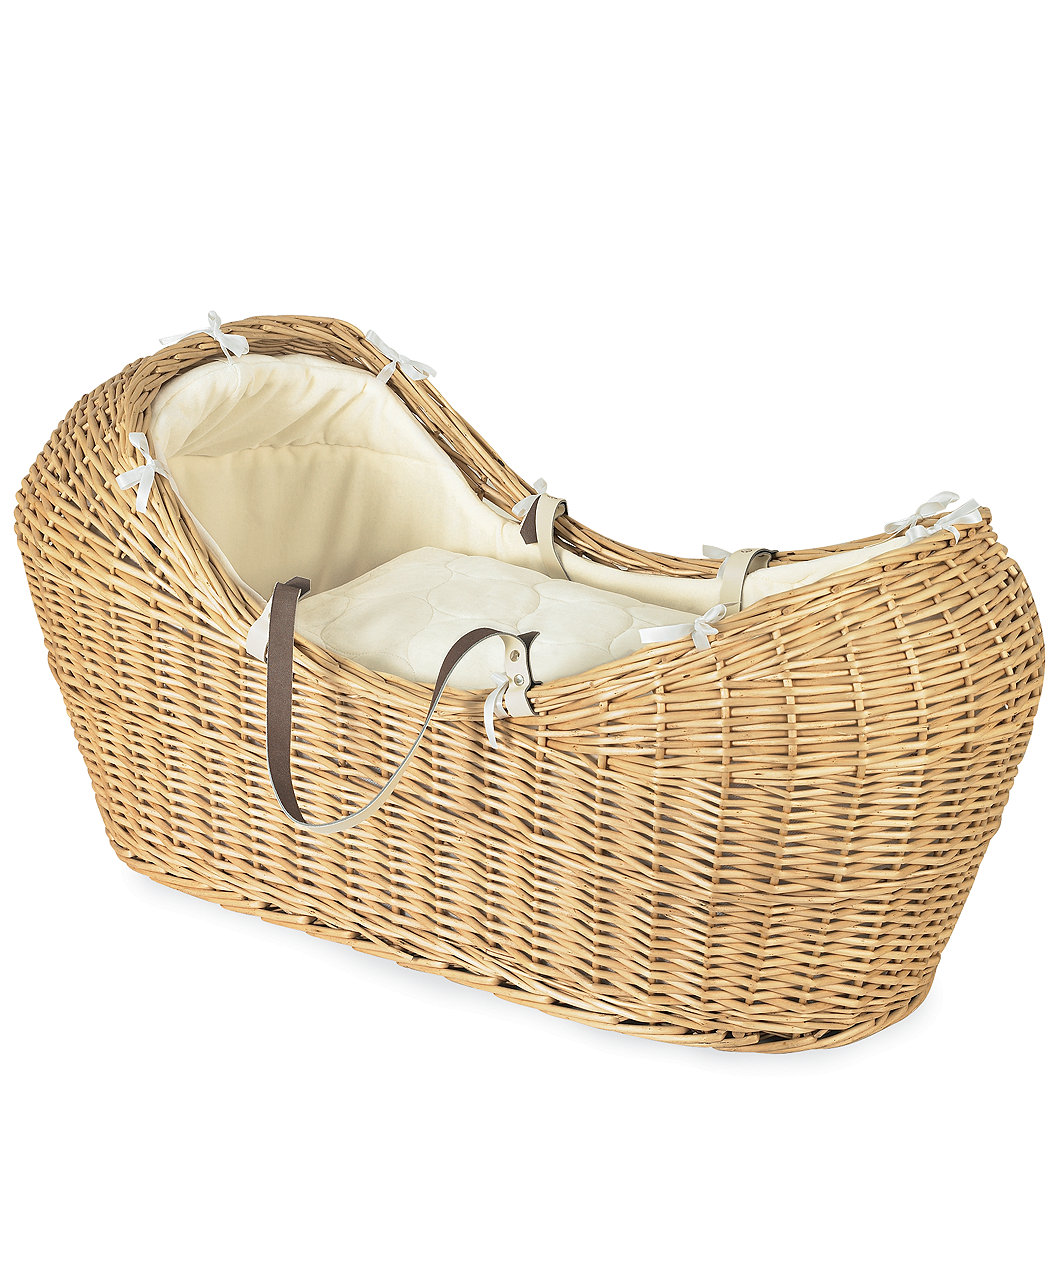 Bassinets & Cradles Nursery Furniture Moses Basket Bedding And Covers